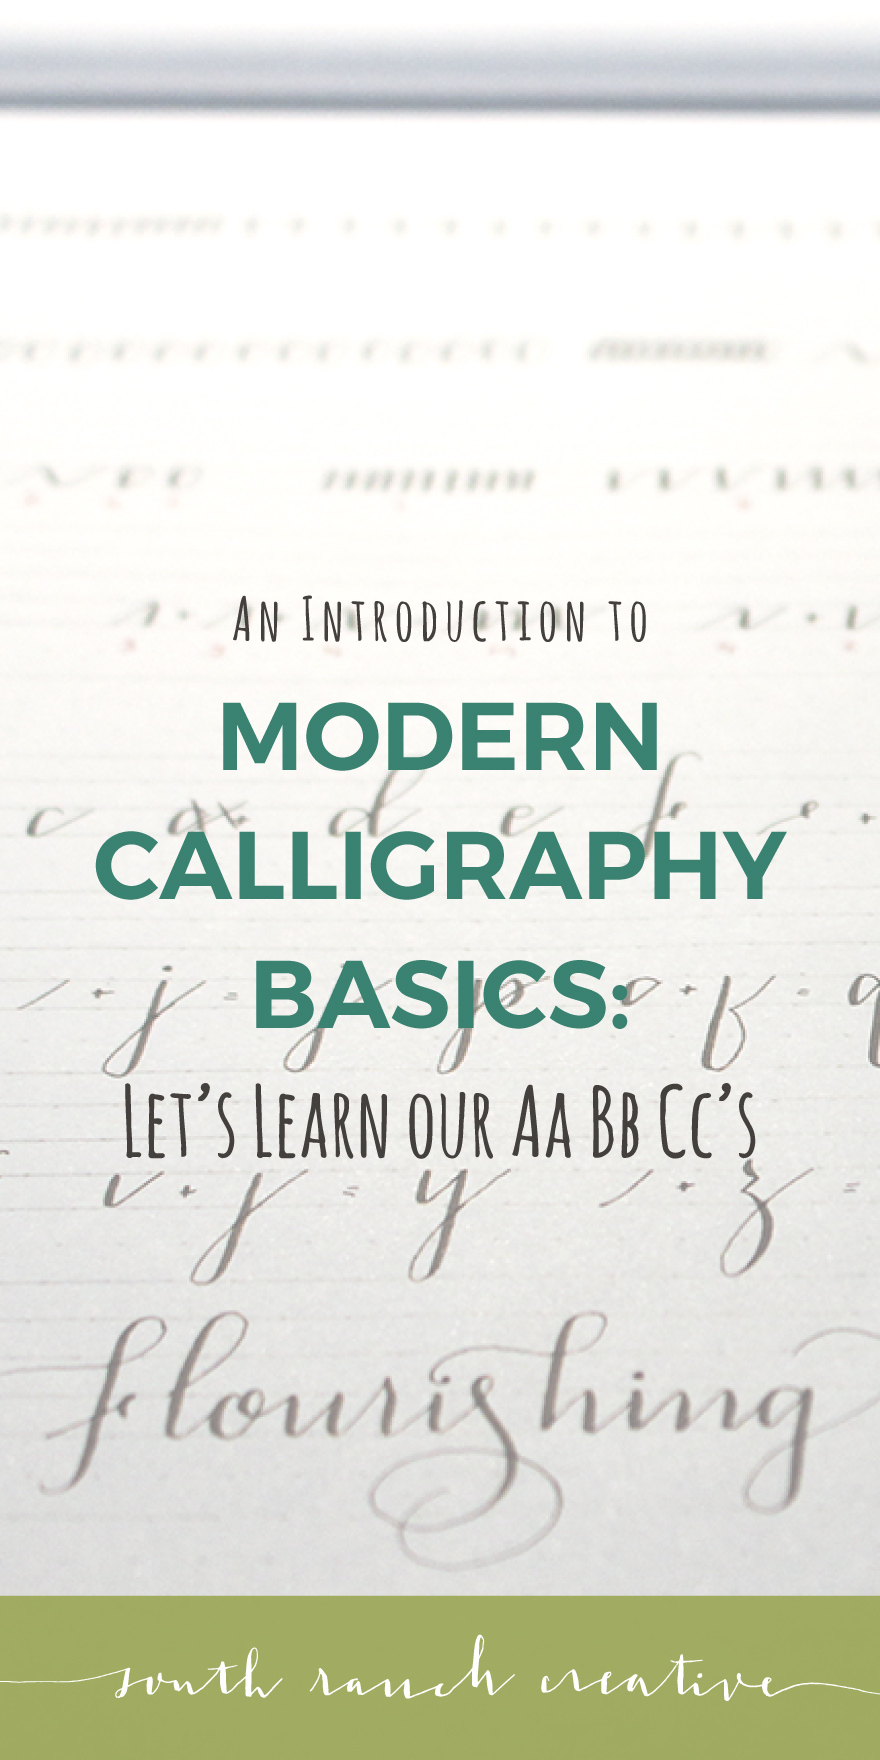 Modern Calligraphy Basics Lets Learn Our AaBbCcs